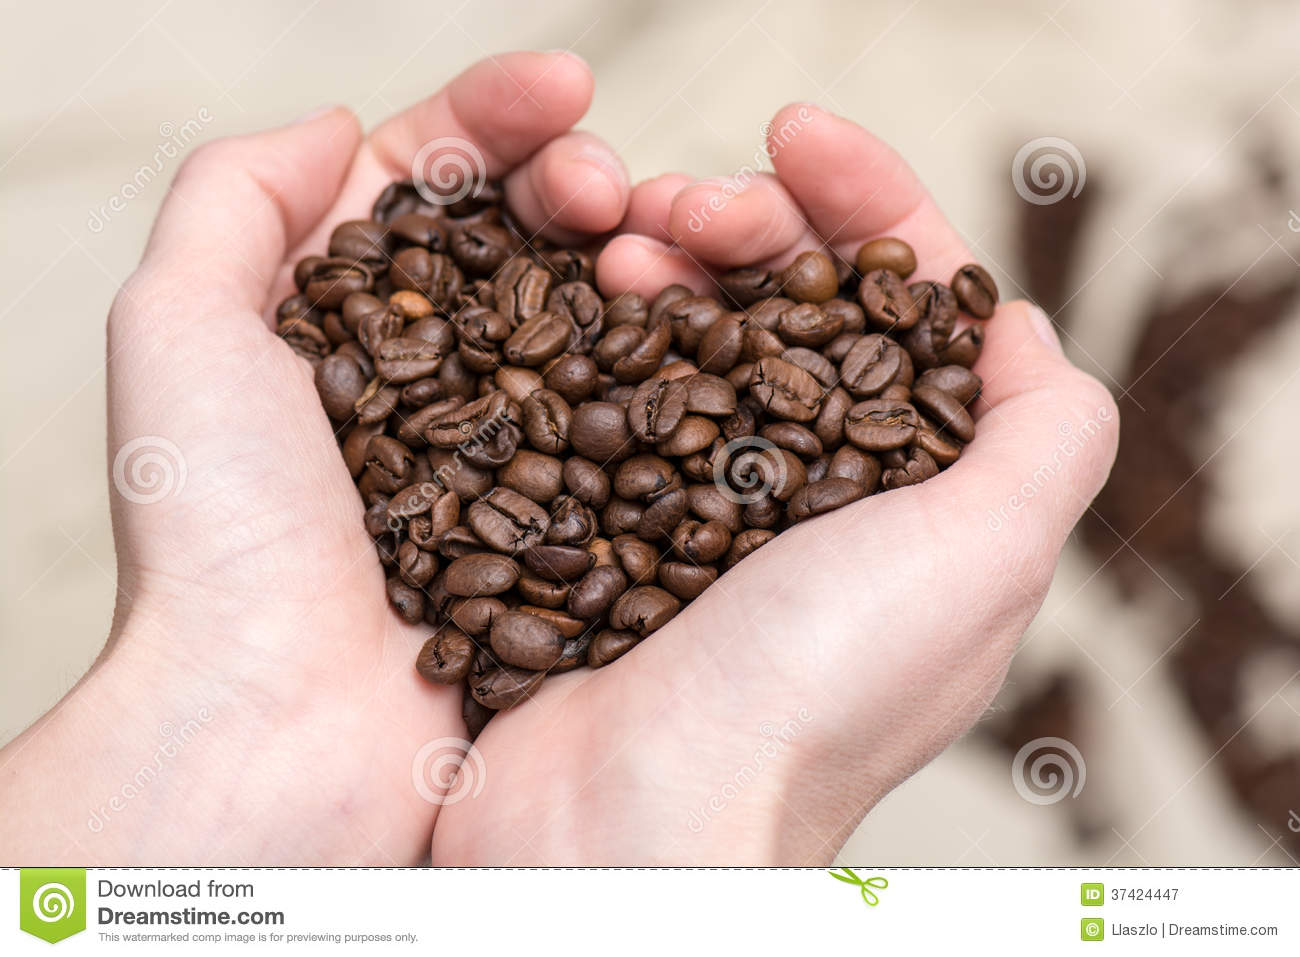 Download Coffee Beans In Love Heart Shape Stock Image - Image of hands, romantic: 37424447